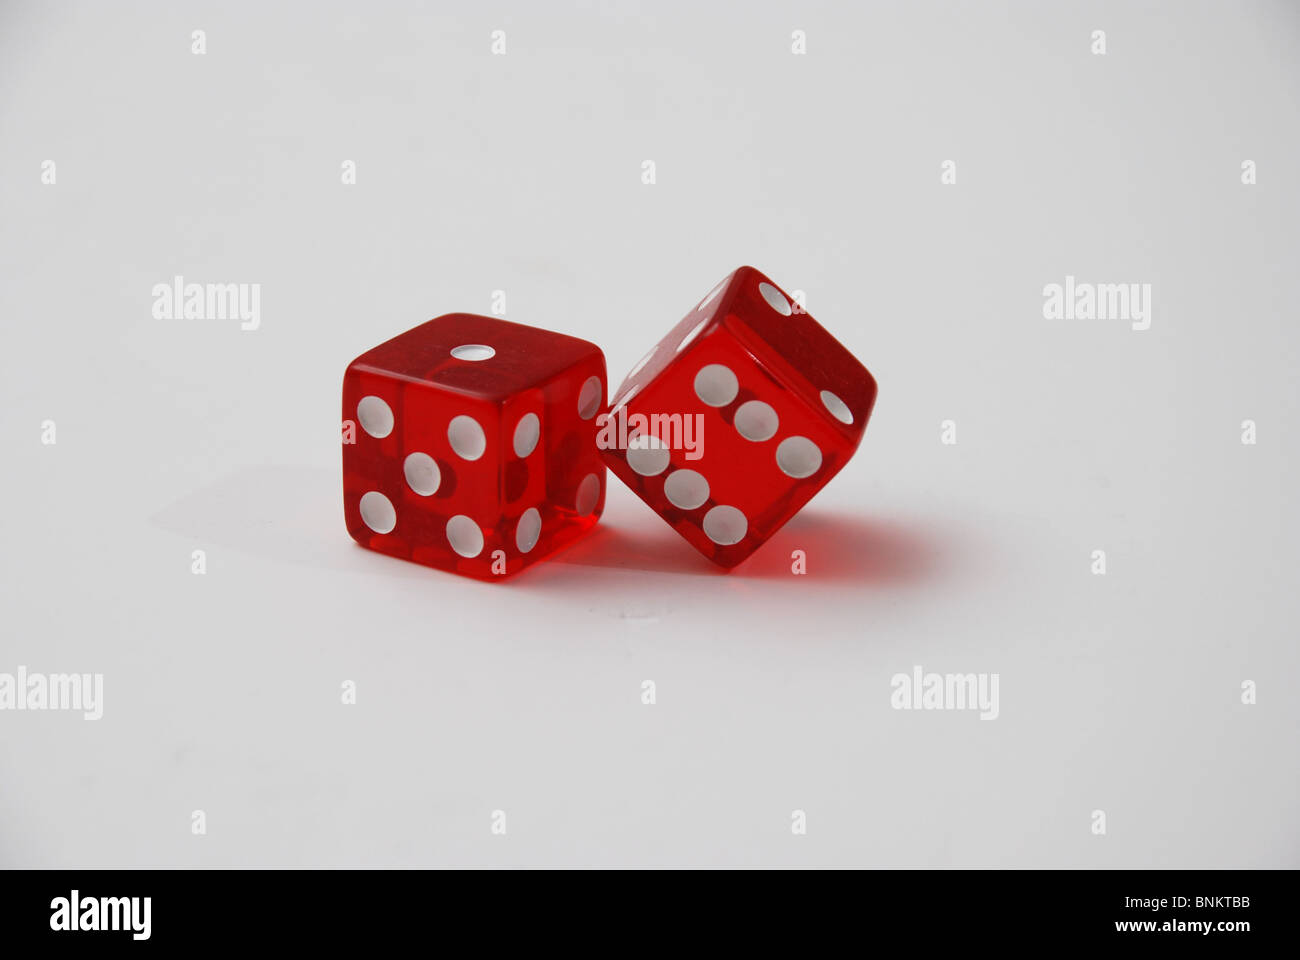 Number Eleven Dice - Stock Image